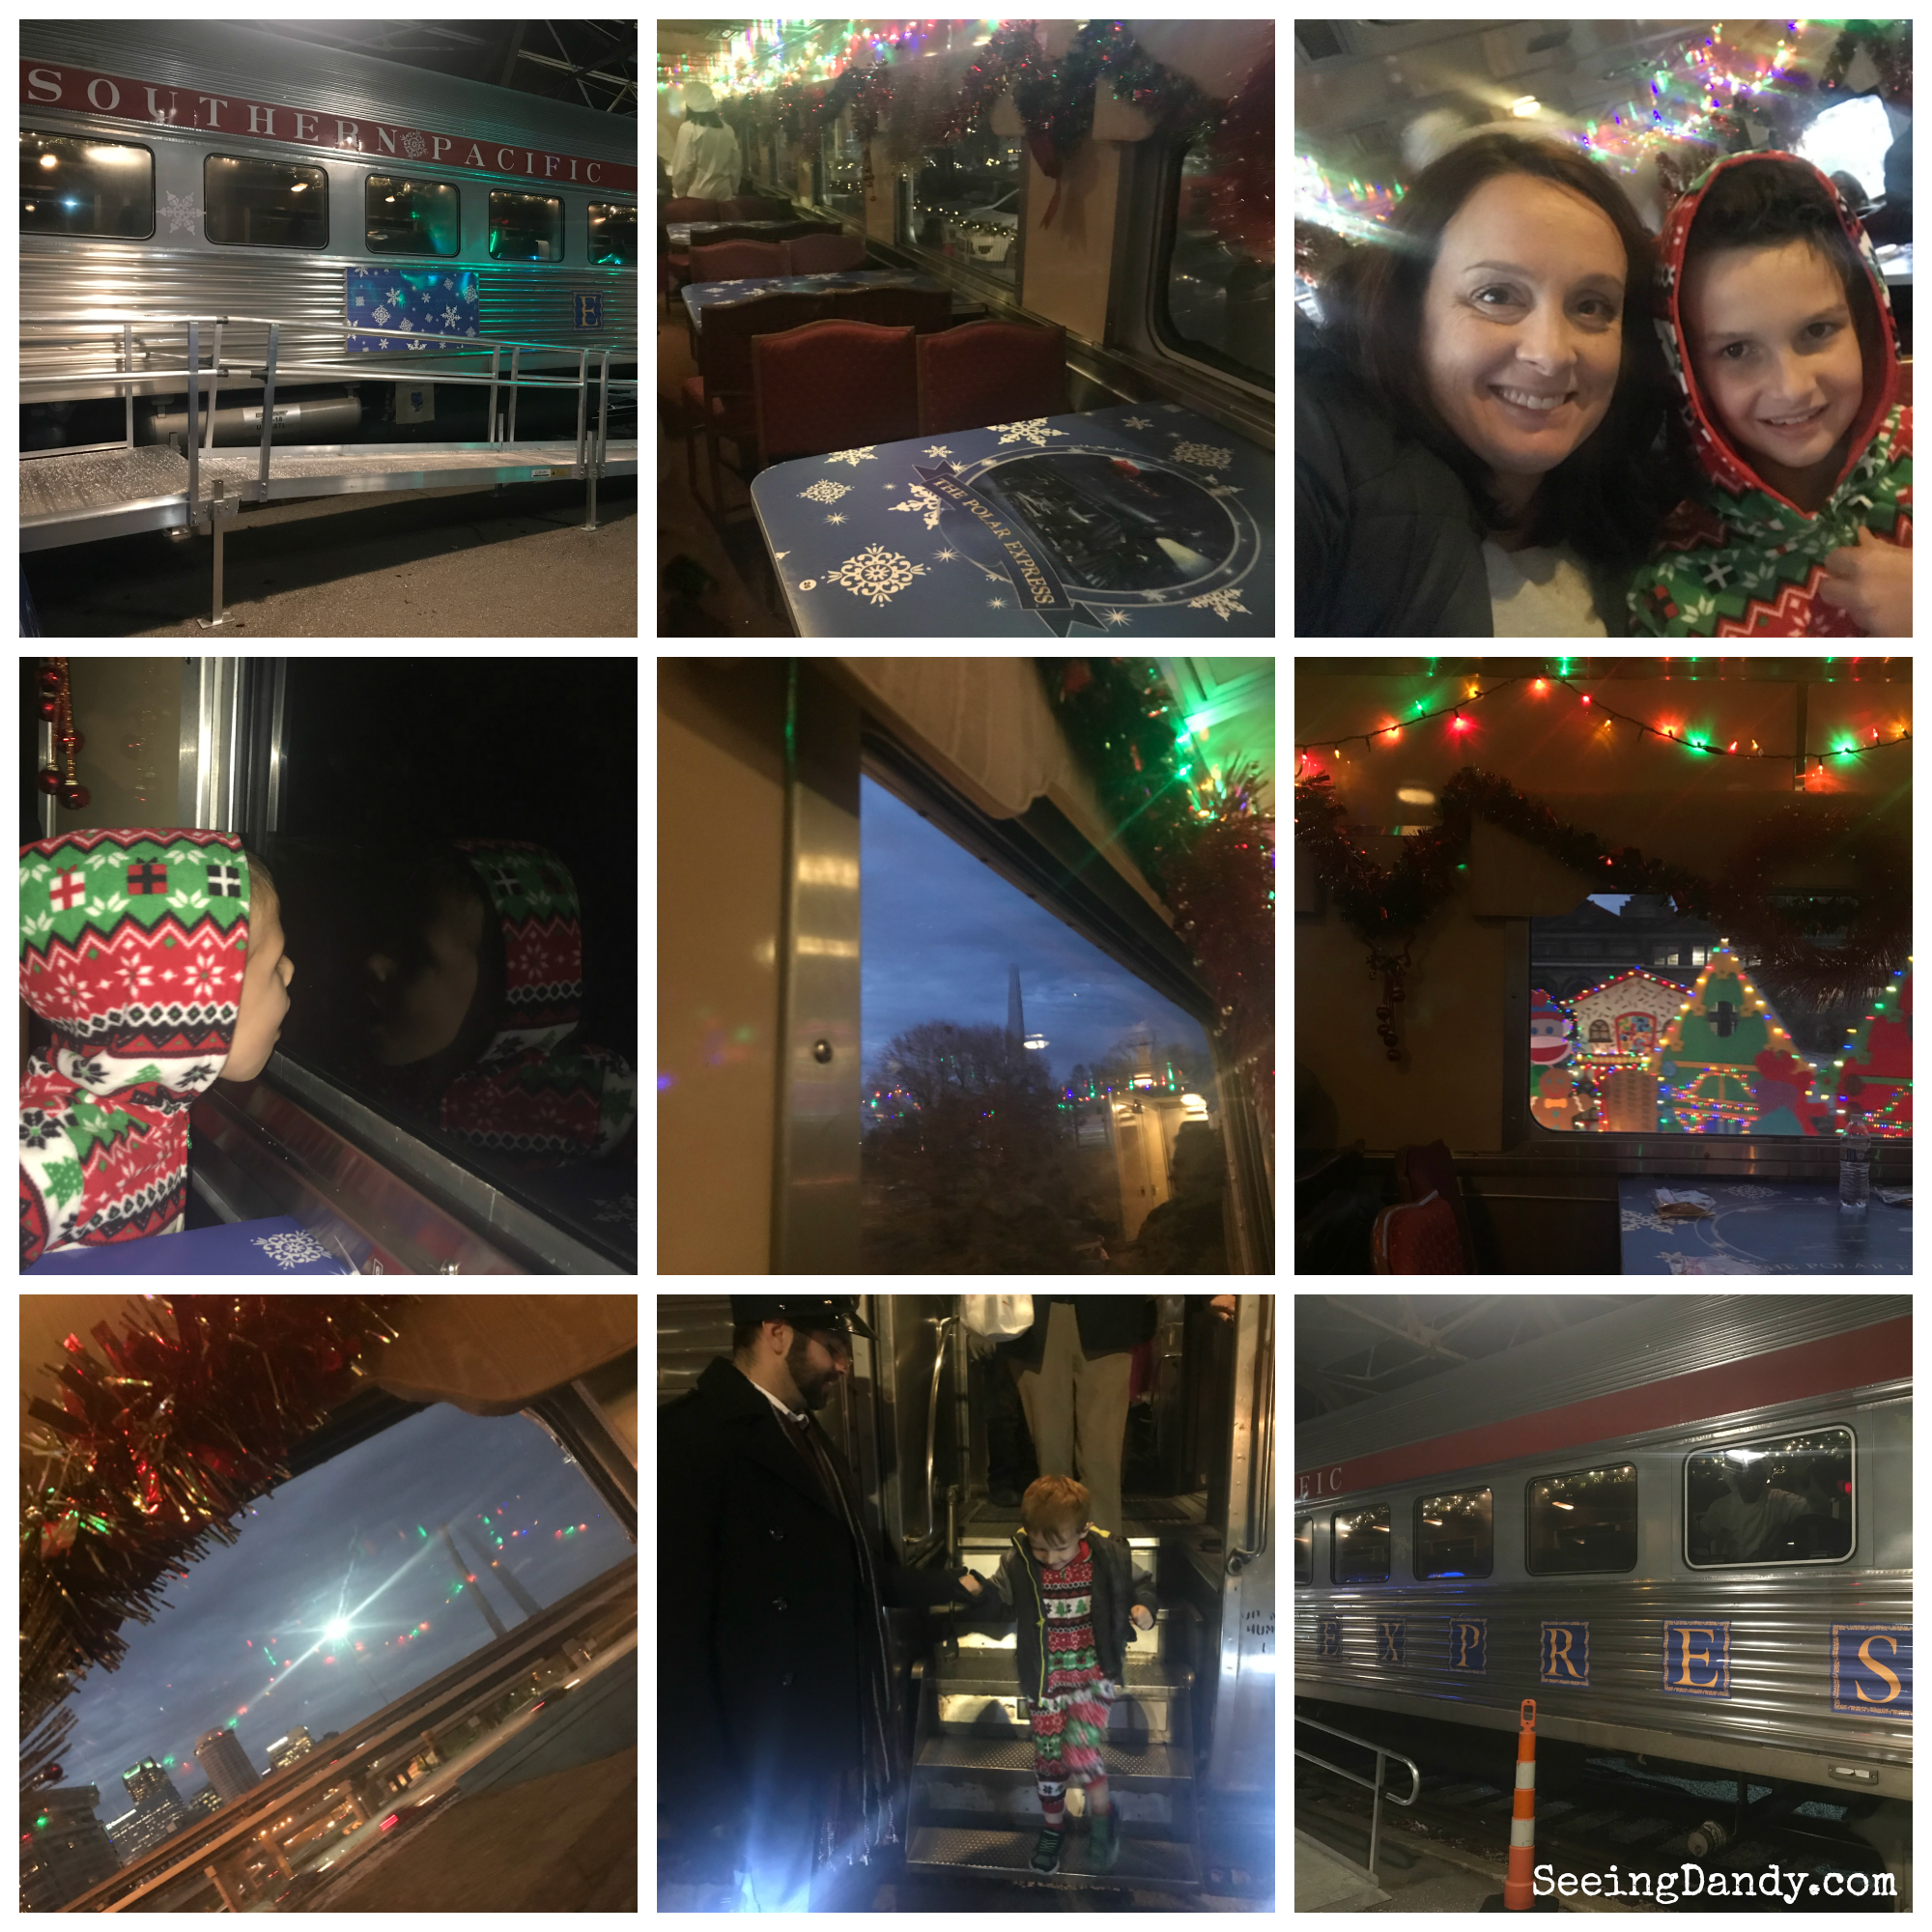 All the magic and fun of the Union Station Polar Express. Sights and downtown St. Louis Arch.